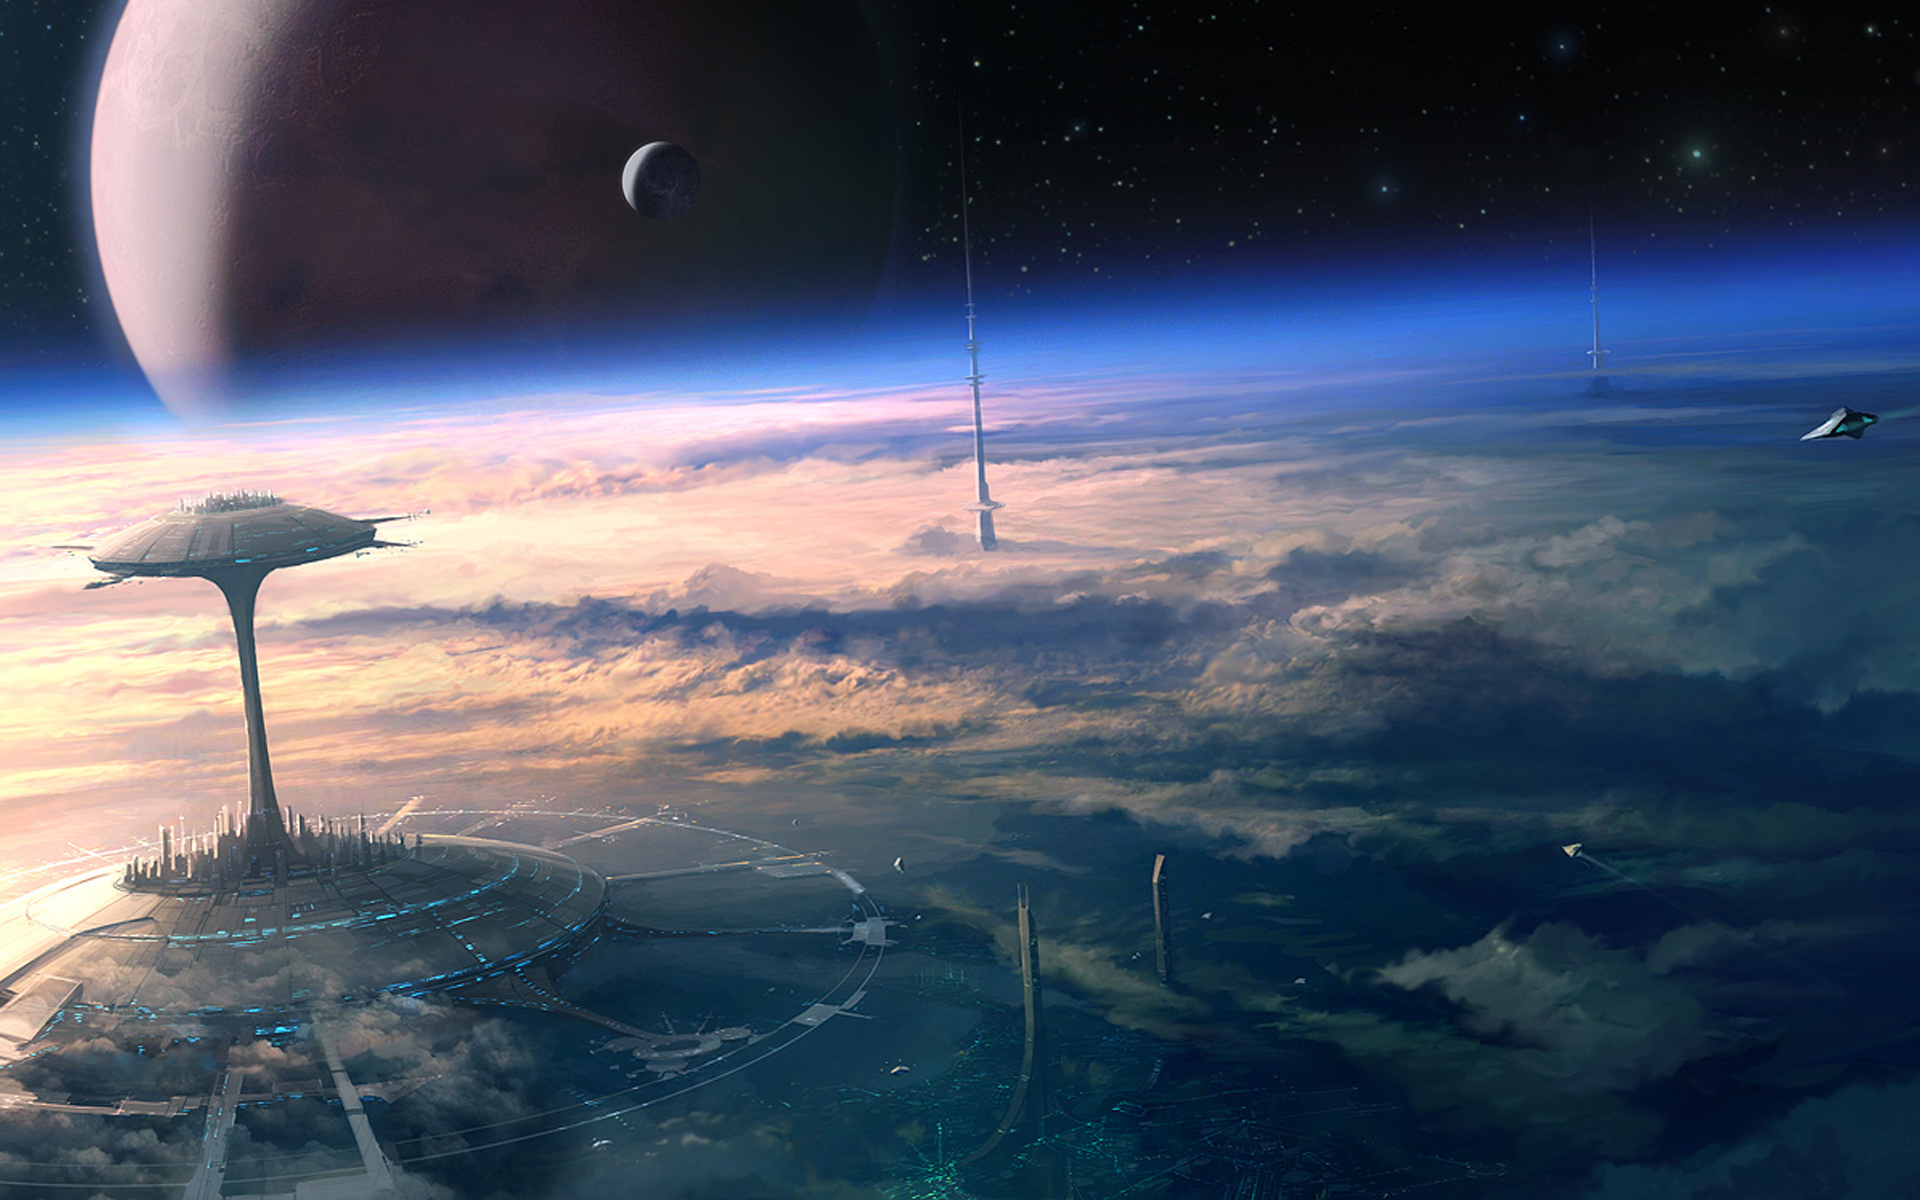 Image: Universe, space, stars, planets, clouds, spaceship, ship